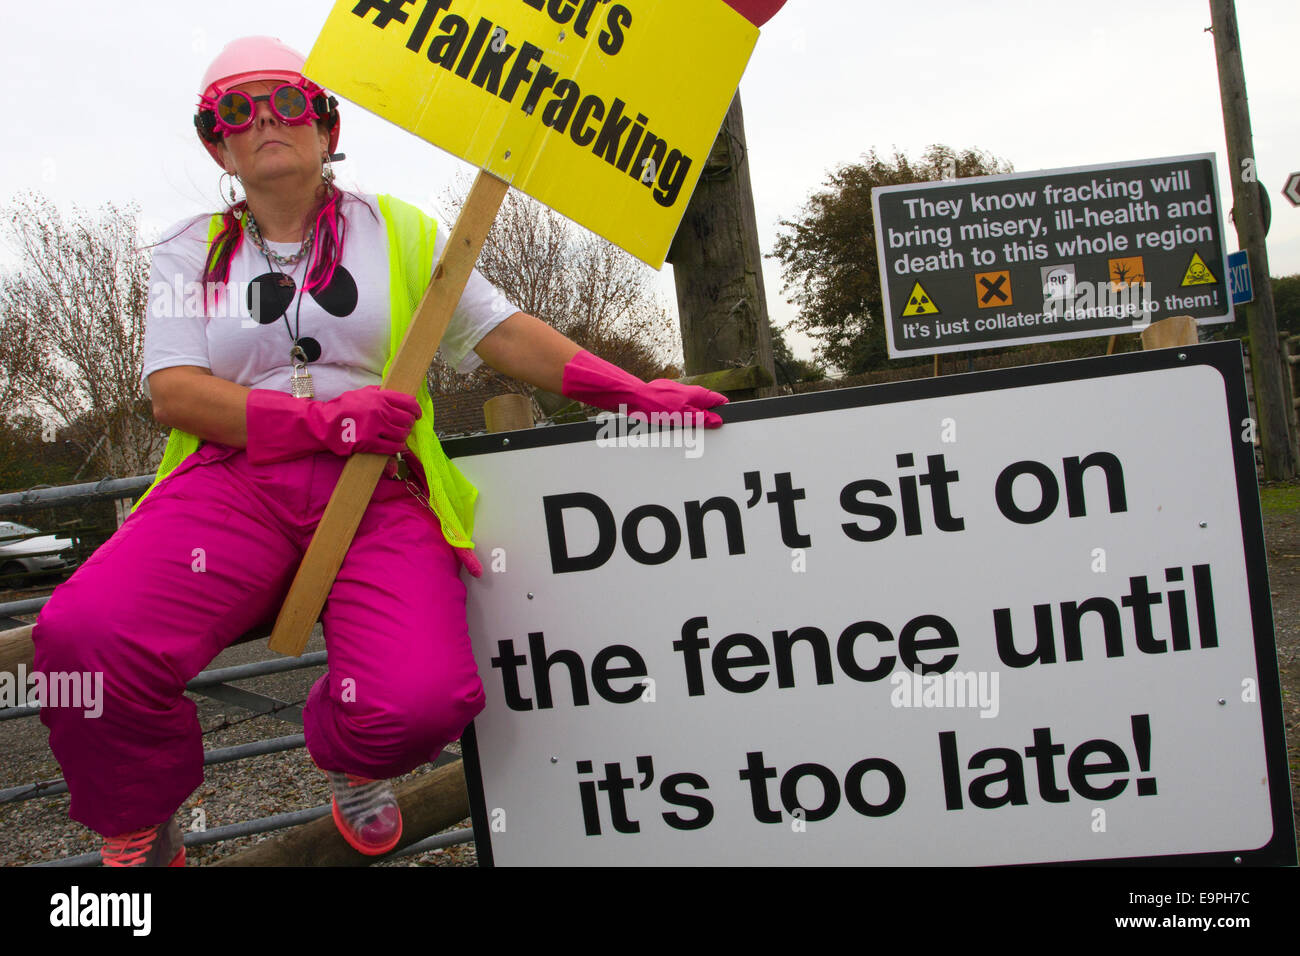 Westby Nr Blackpool, Lancashire 31st October, 2014. Frack Free Lancashire_Nana Rave a Local Resident opposed to - Stock Image